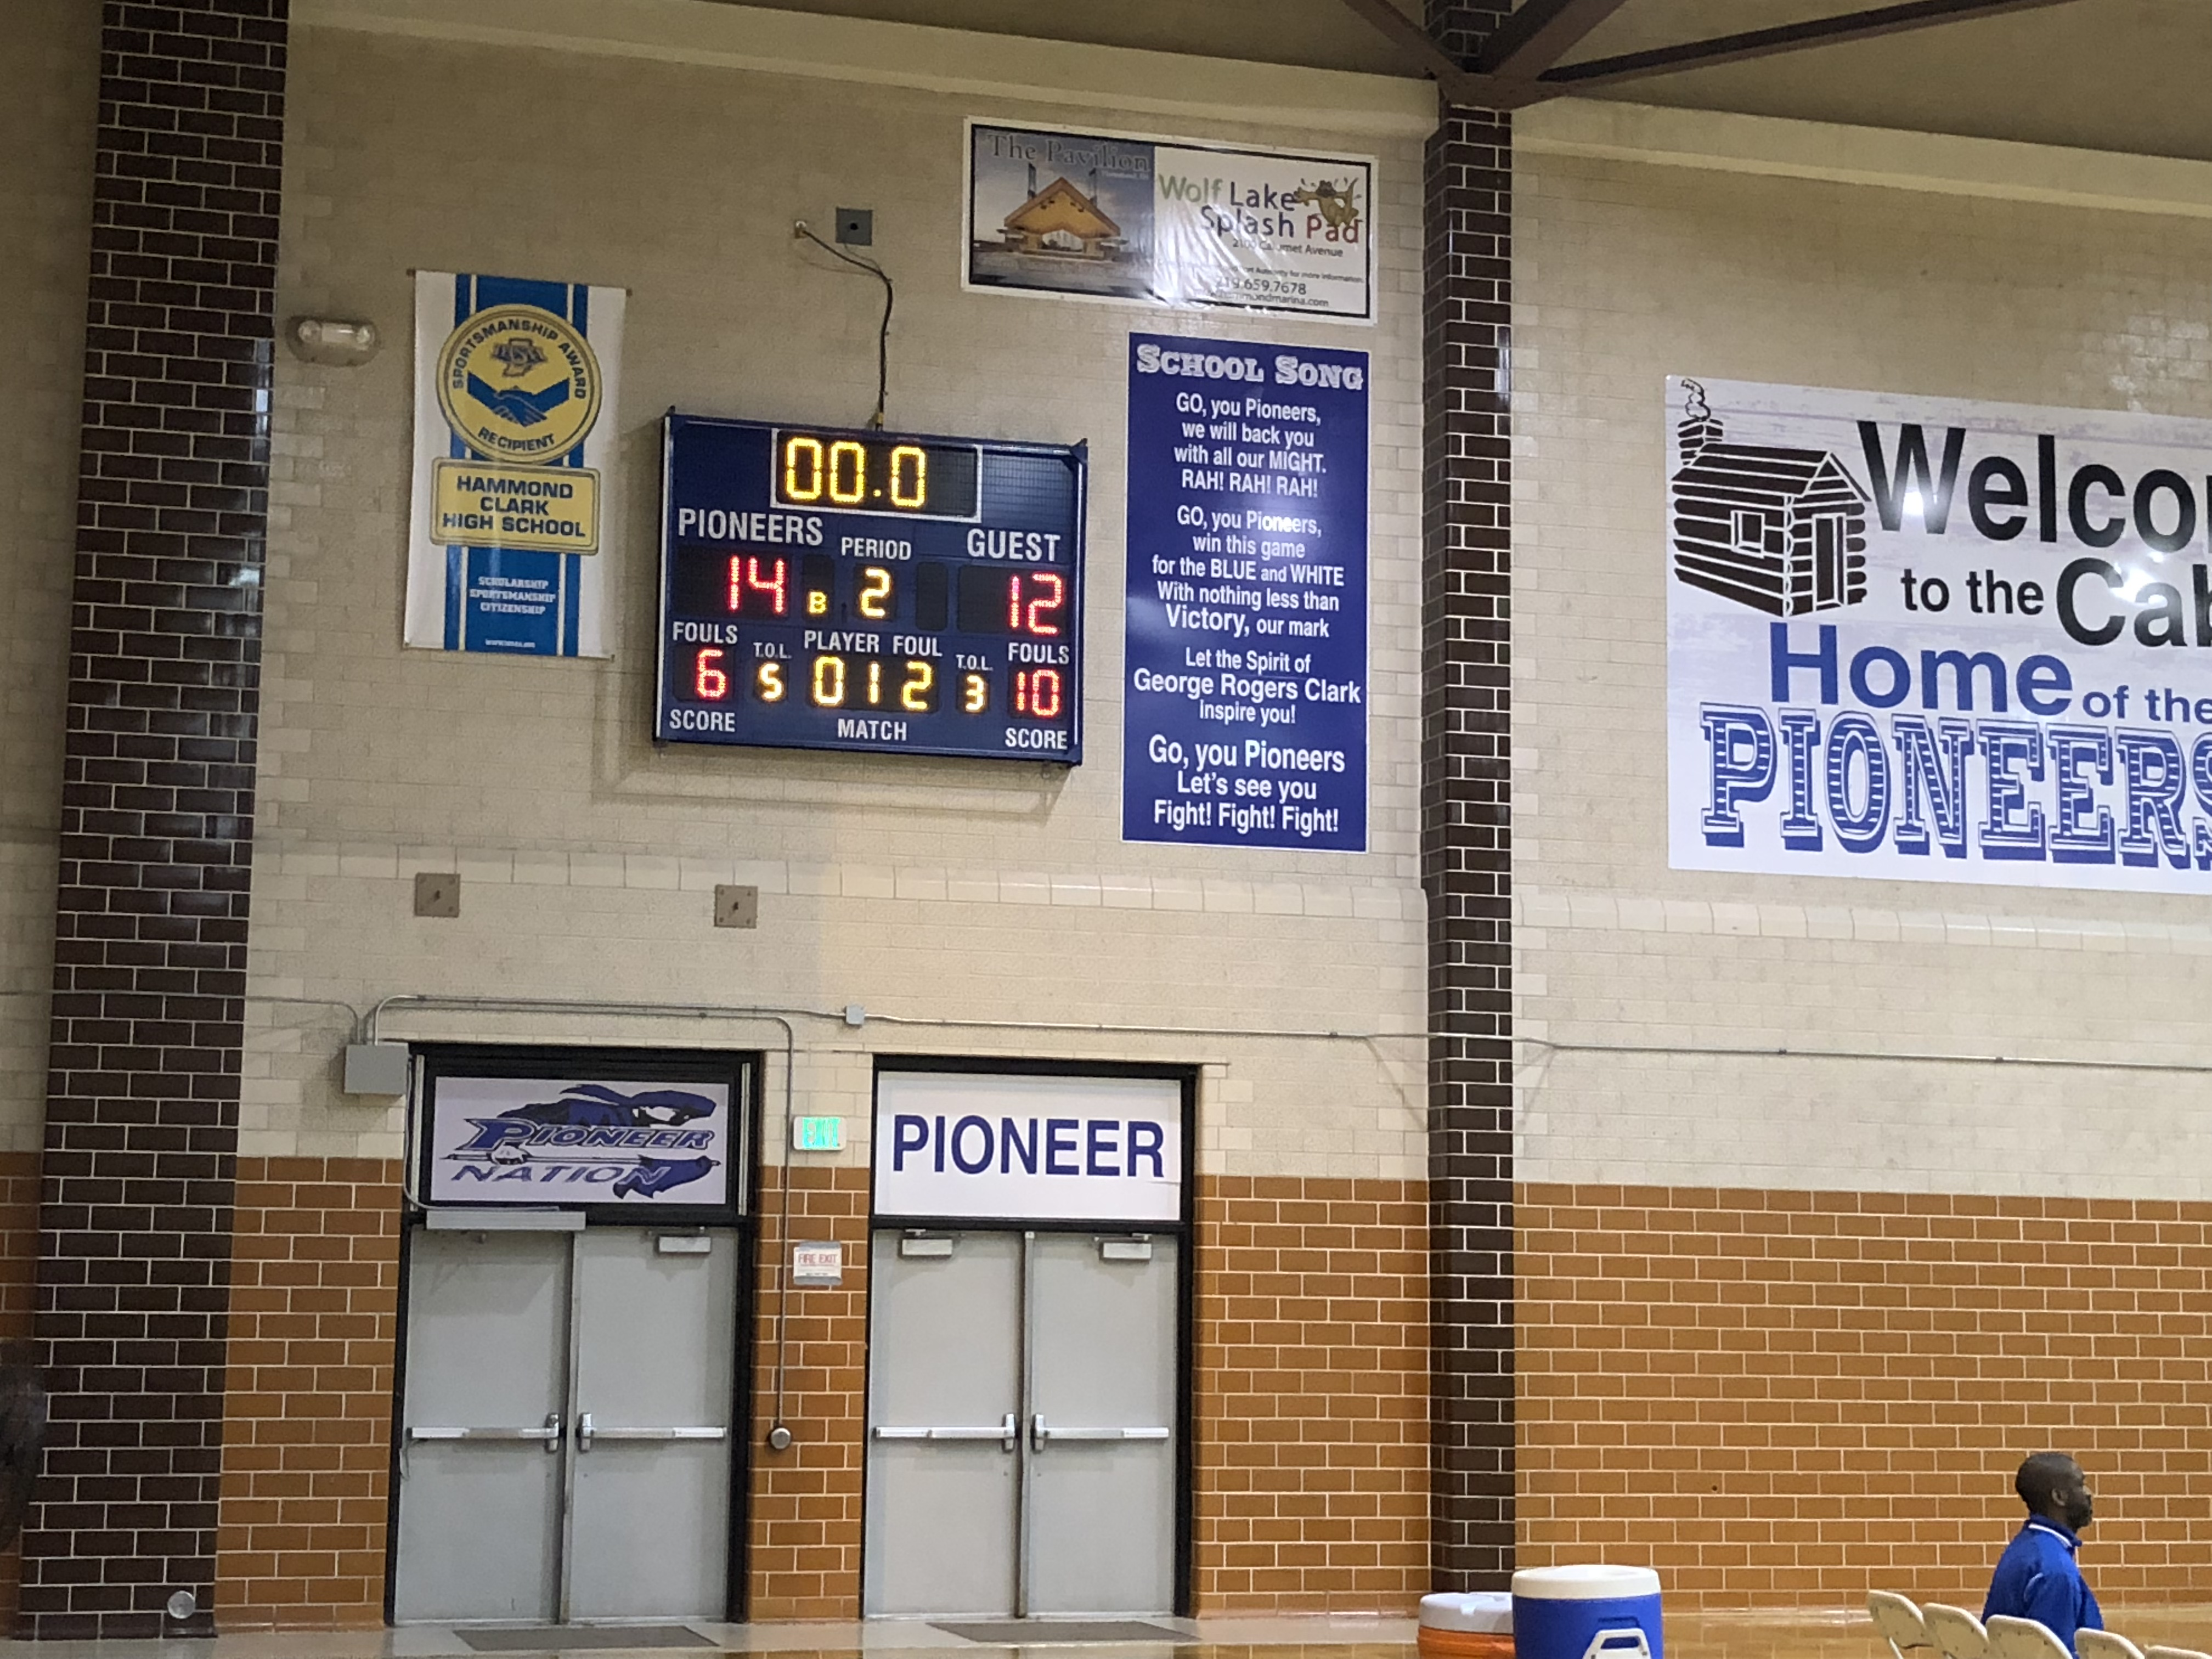 Lady Pioneers up 14-12 at the half